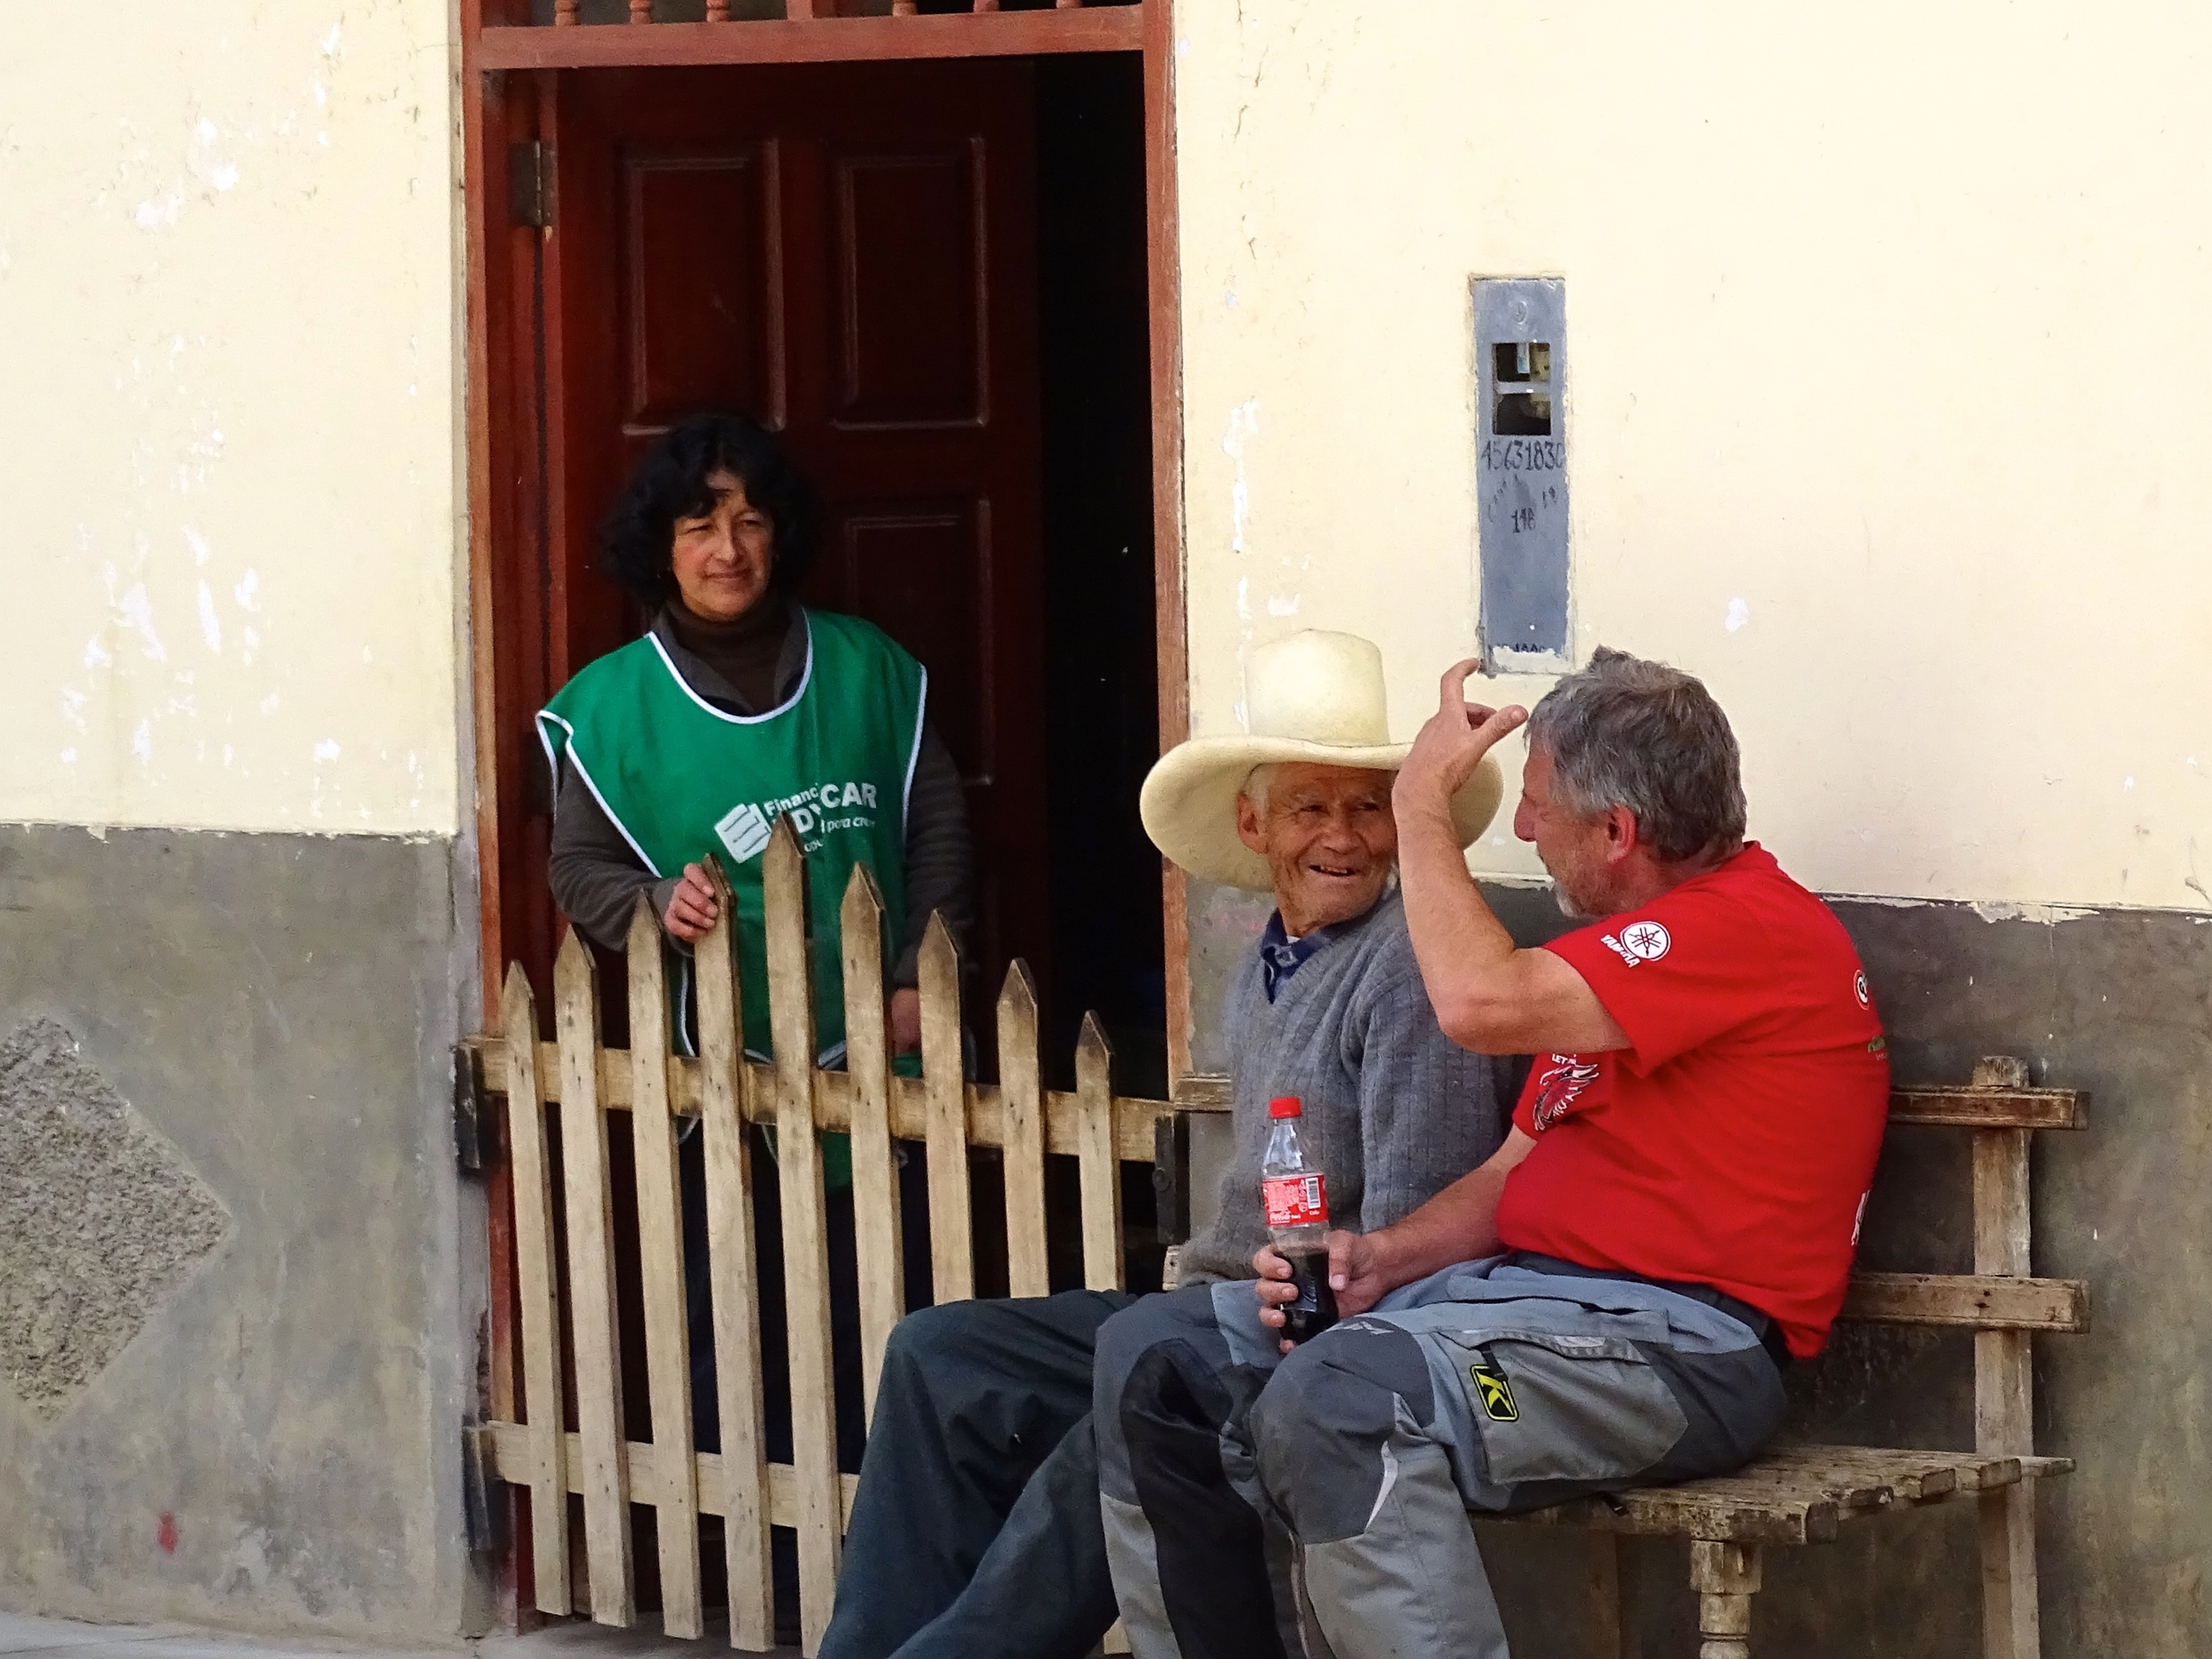 We took a break in this tiny town and Keith had a good chat with a fella about their hats.